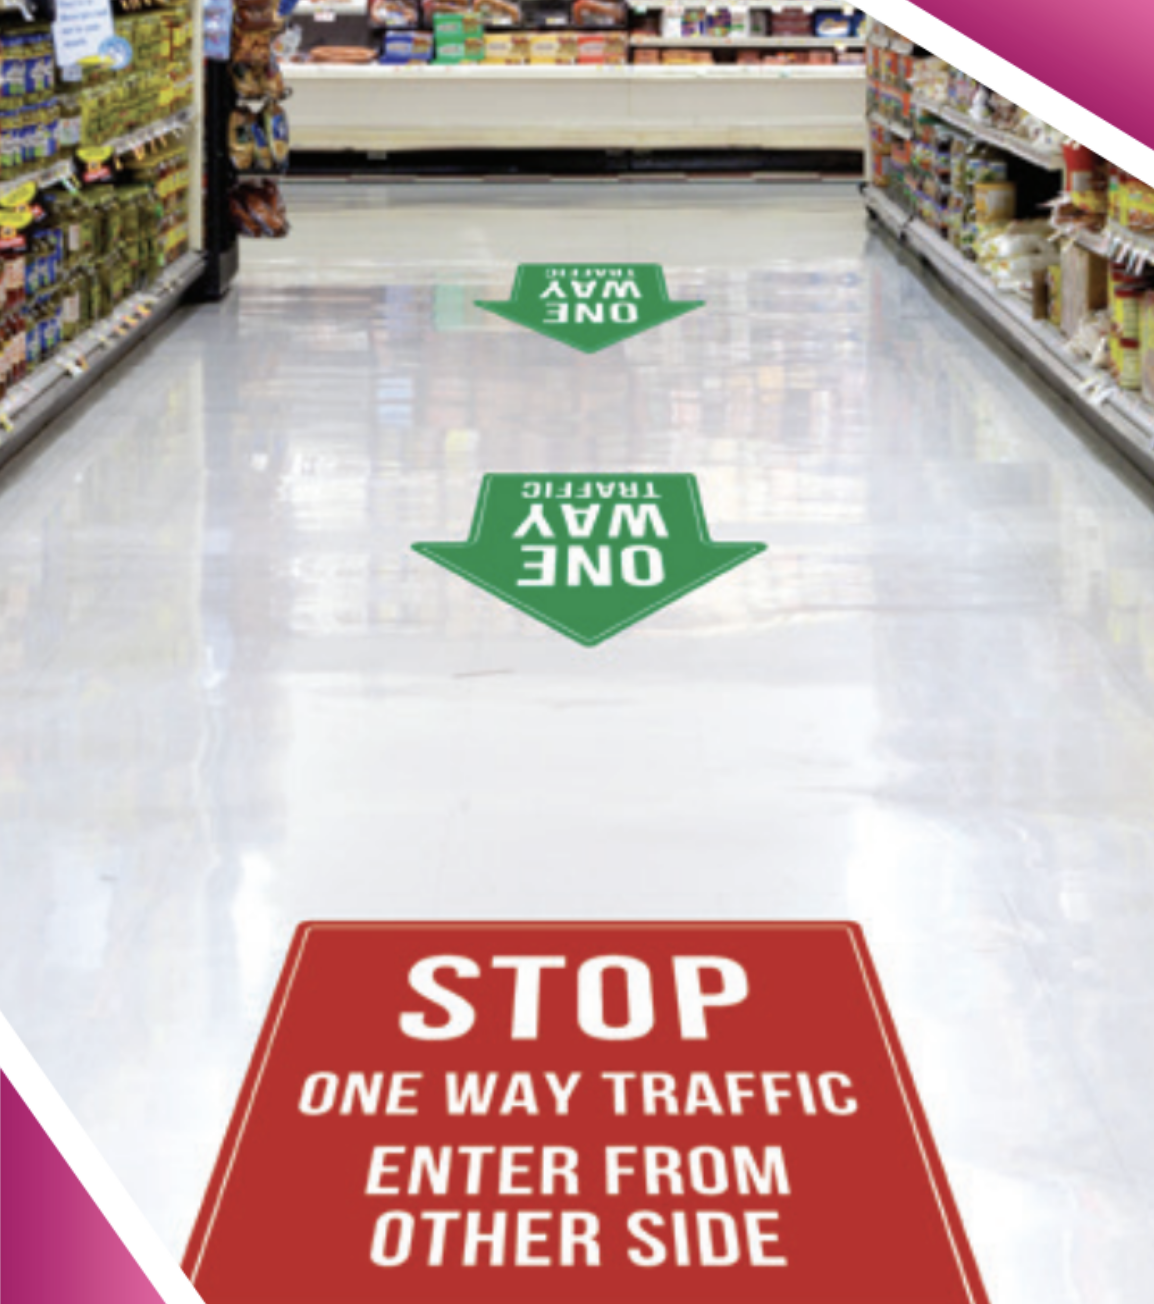 covid-19 grocery store isle floor signage